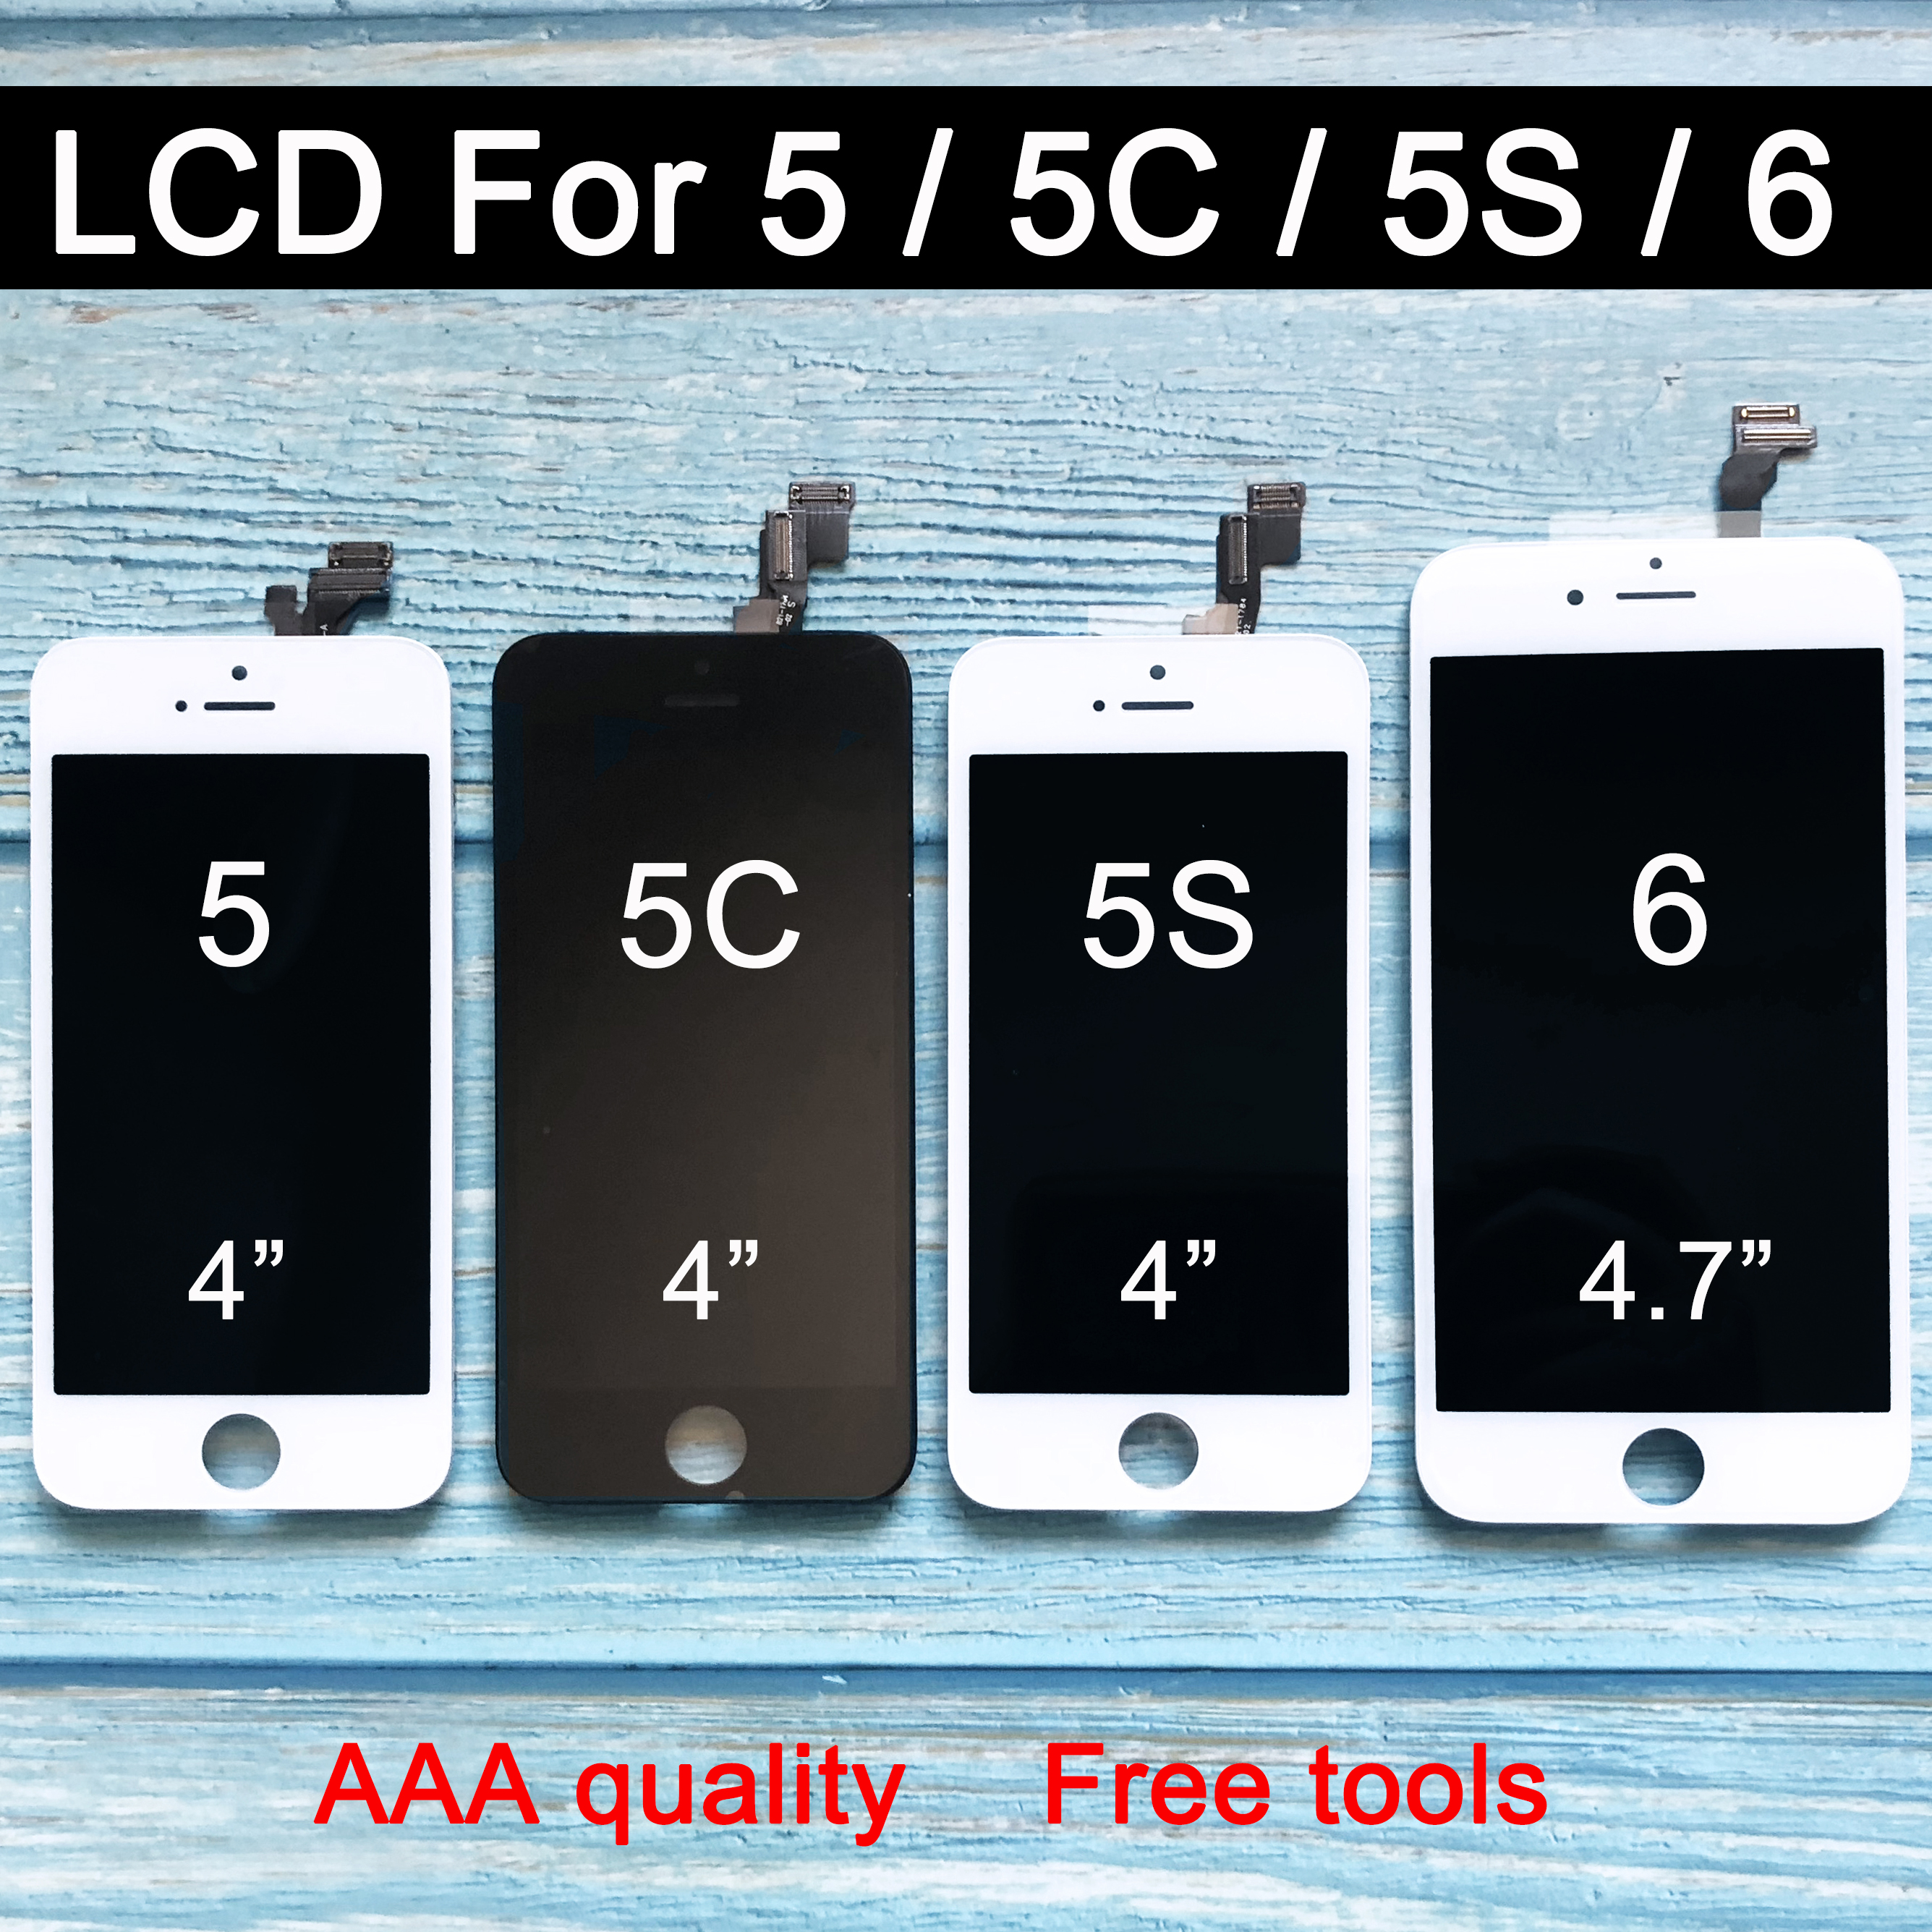 Fabrik Verkauf LCD Für iphone 6 lcd Display für iphone 5 5c 5s LCD Screen Display Touch Digitizer Assembly Bildschirm Ersatz